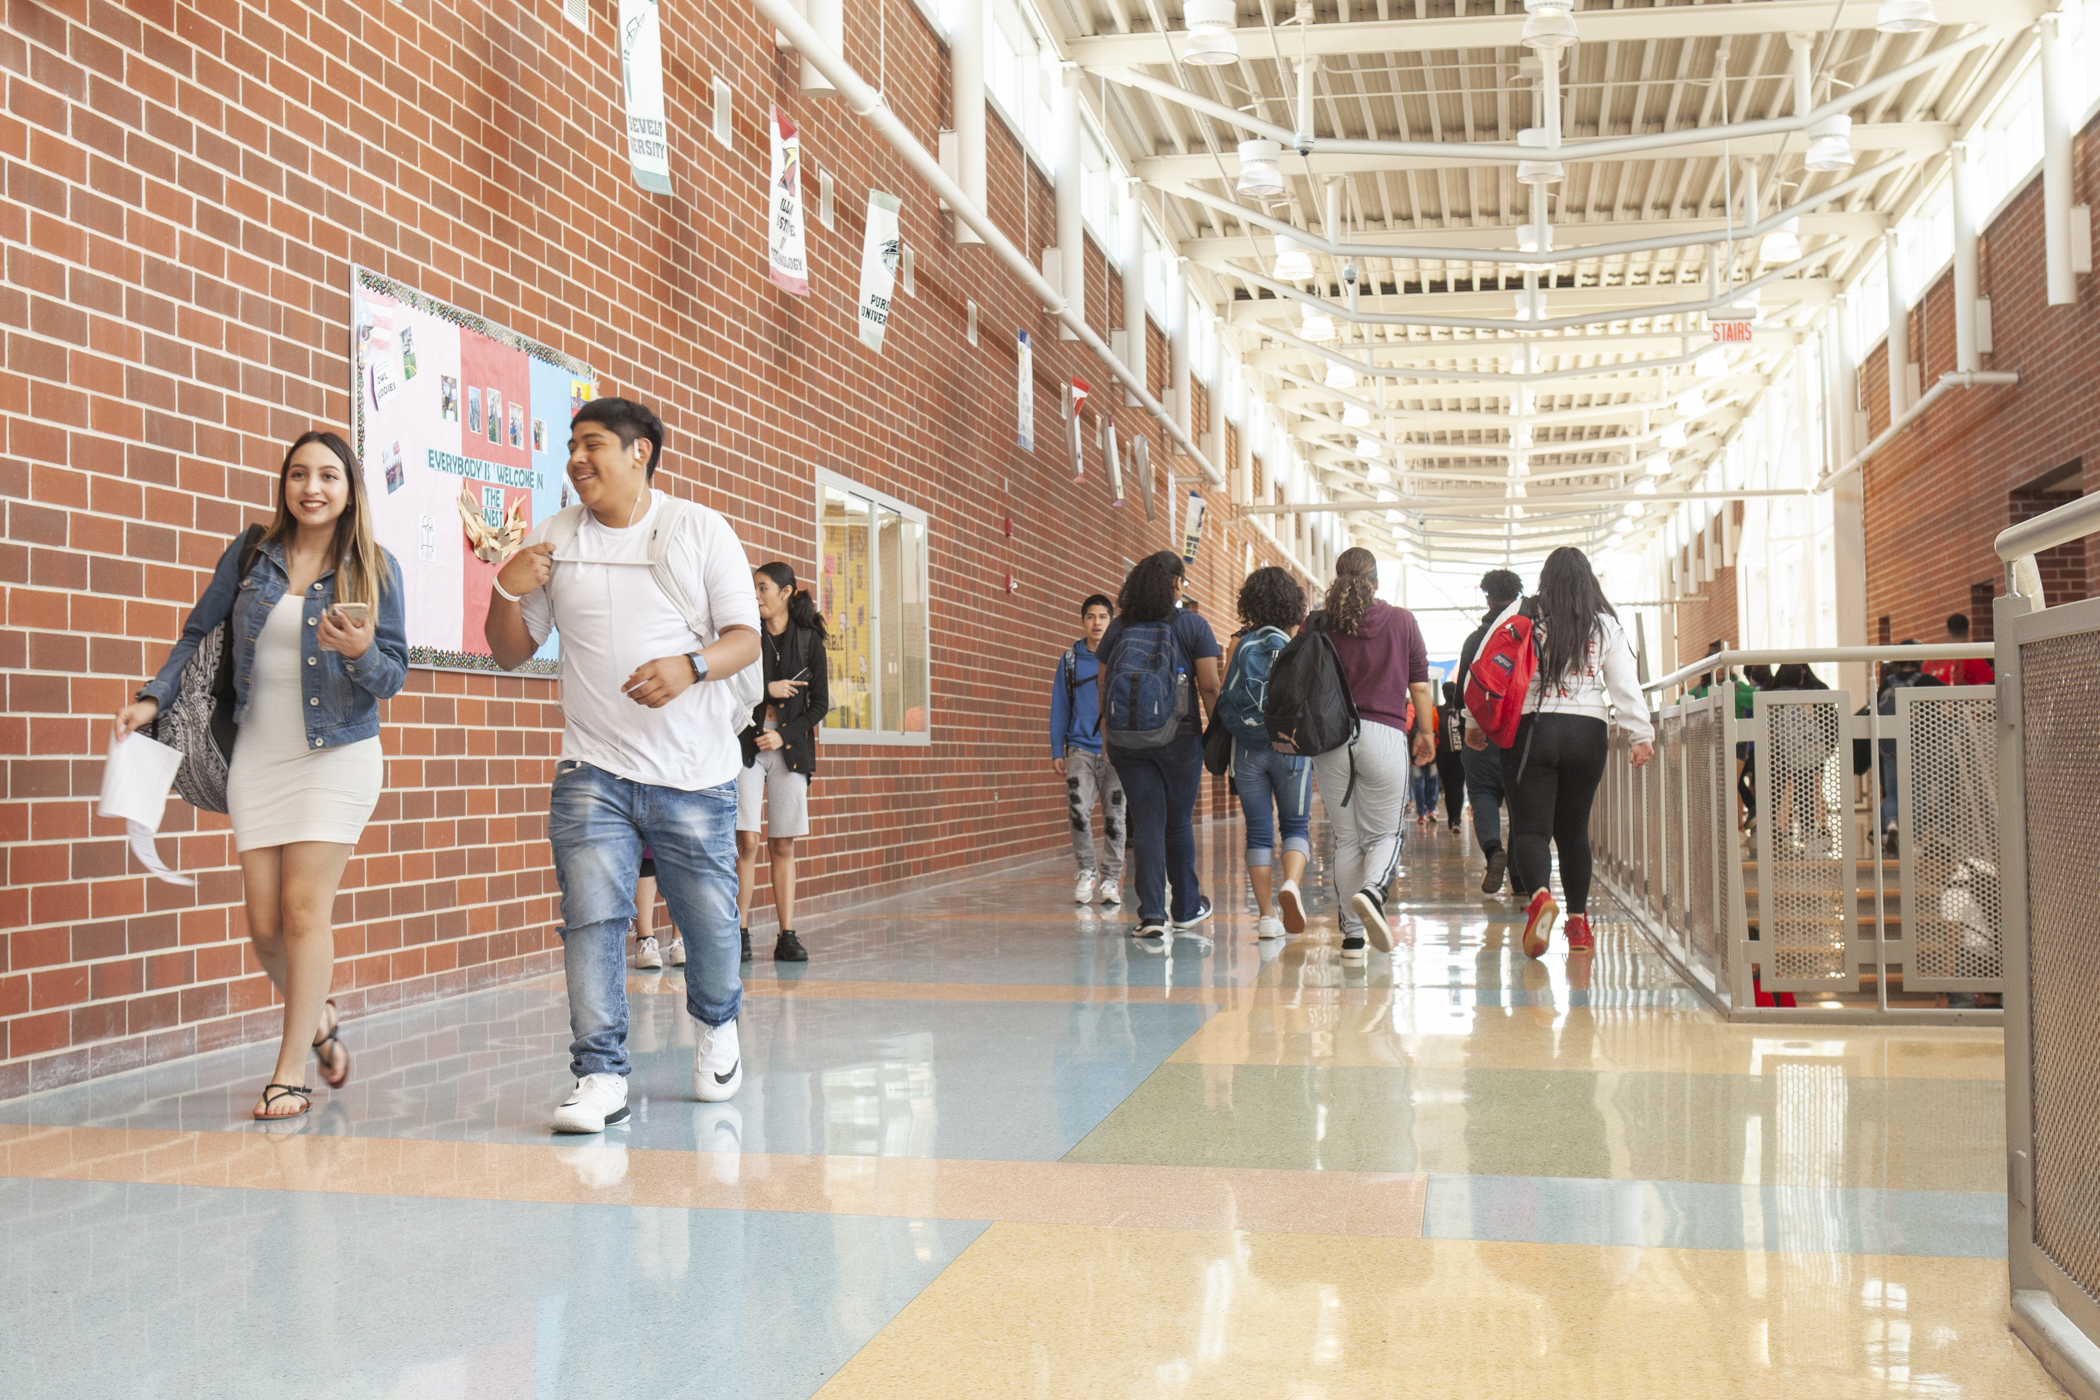 Students in the hallways May 2019 at North-Grand High School in Chicago.